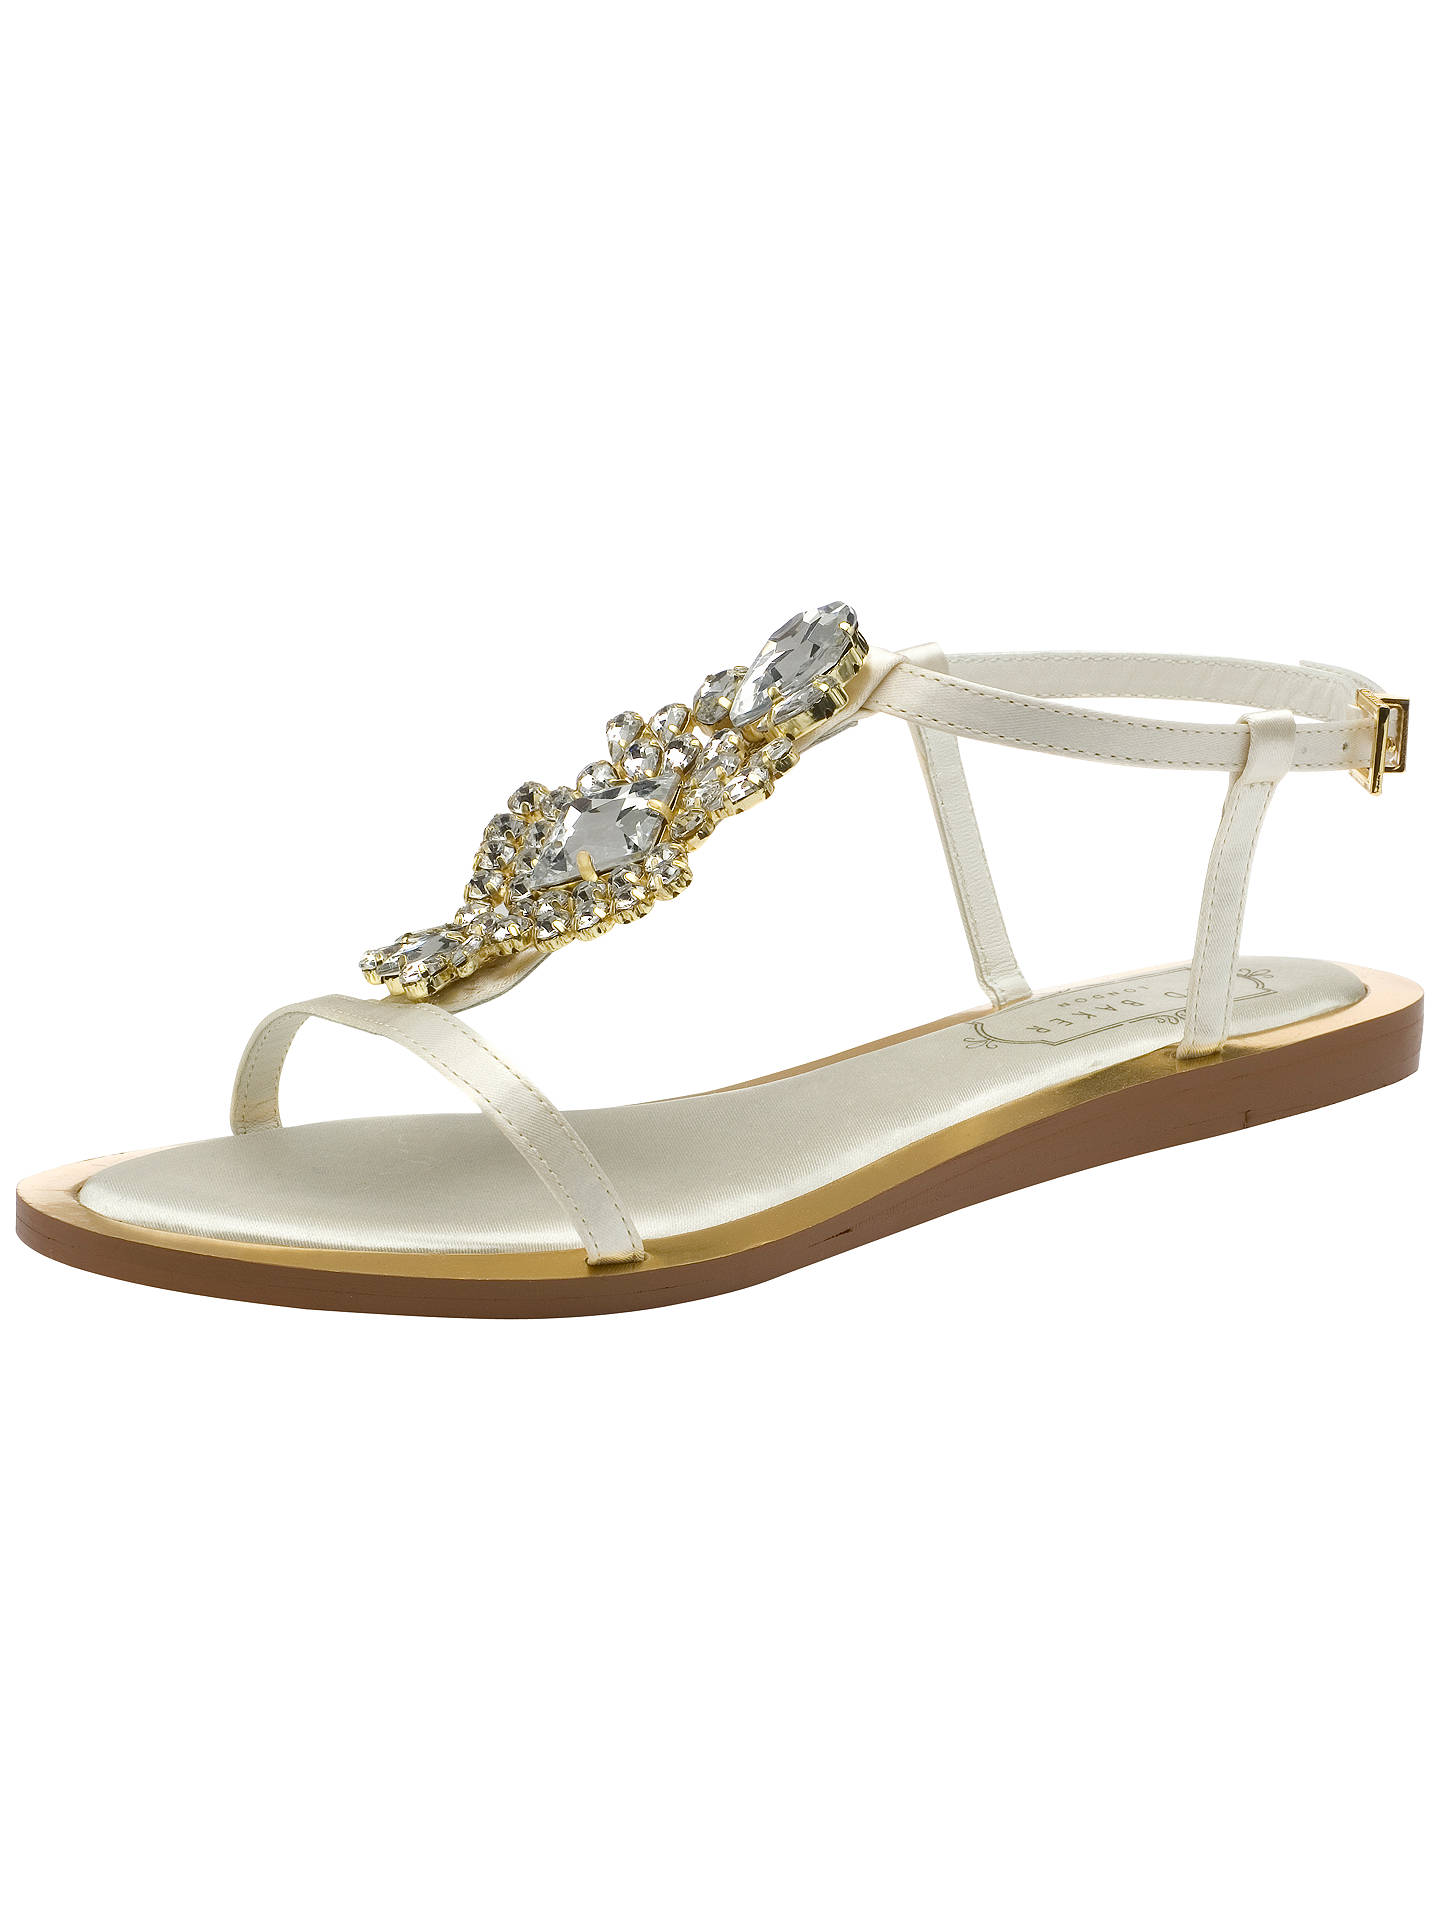 4de16a2a6 Buy Ted Baker Tie the Knot Roseupe Jewelled Sandals